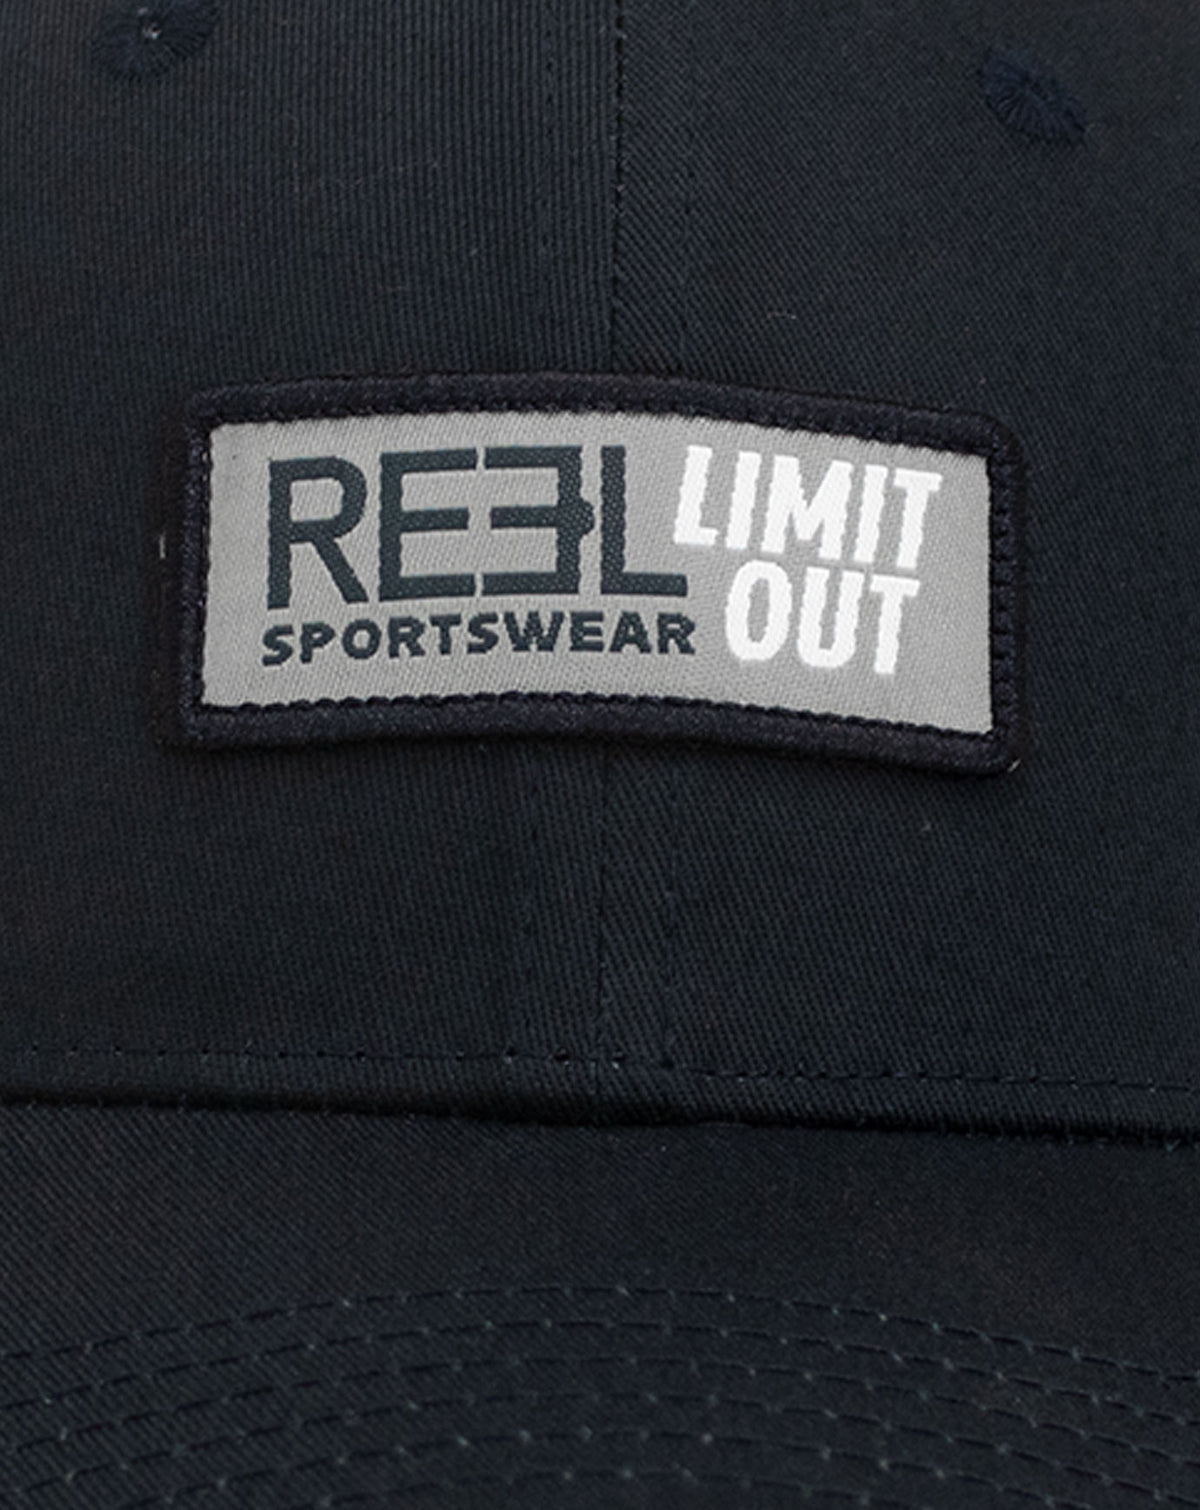 Limit Out trucker hat